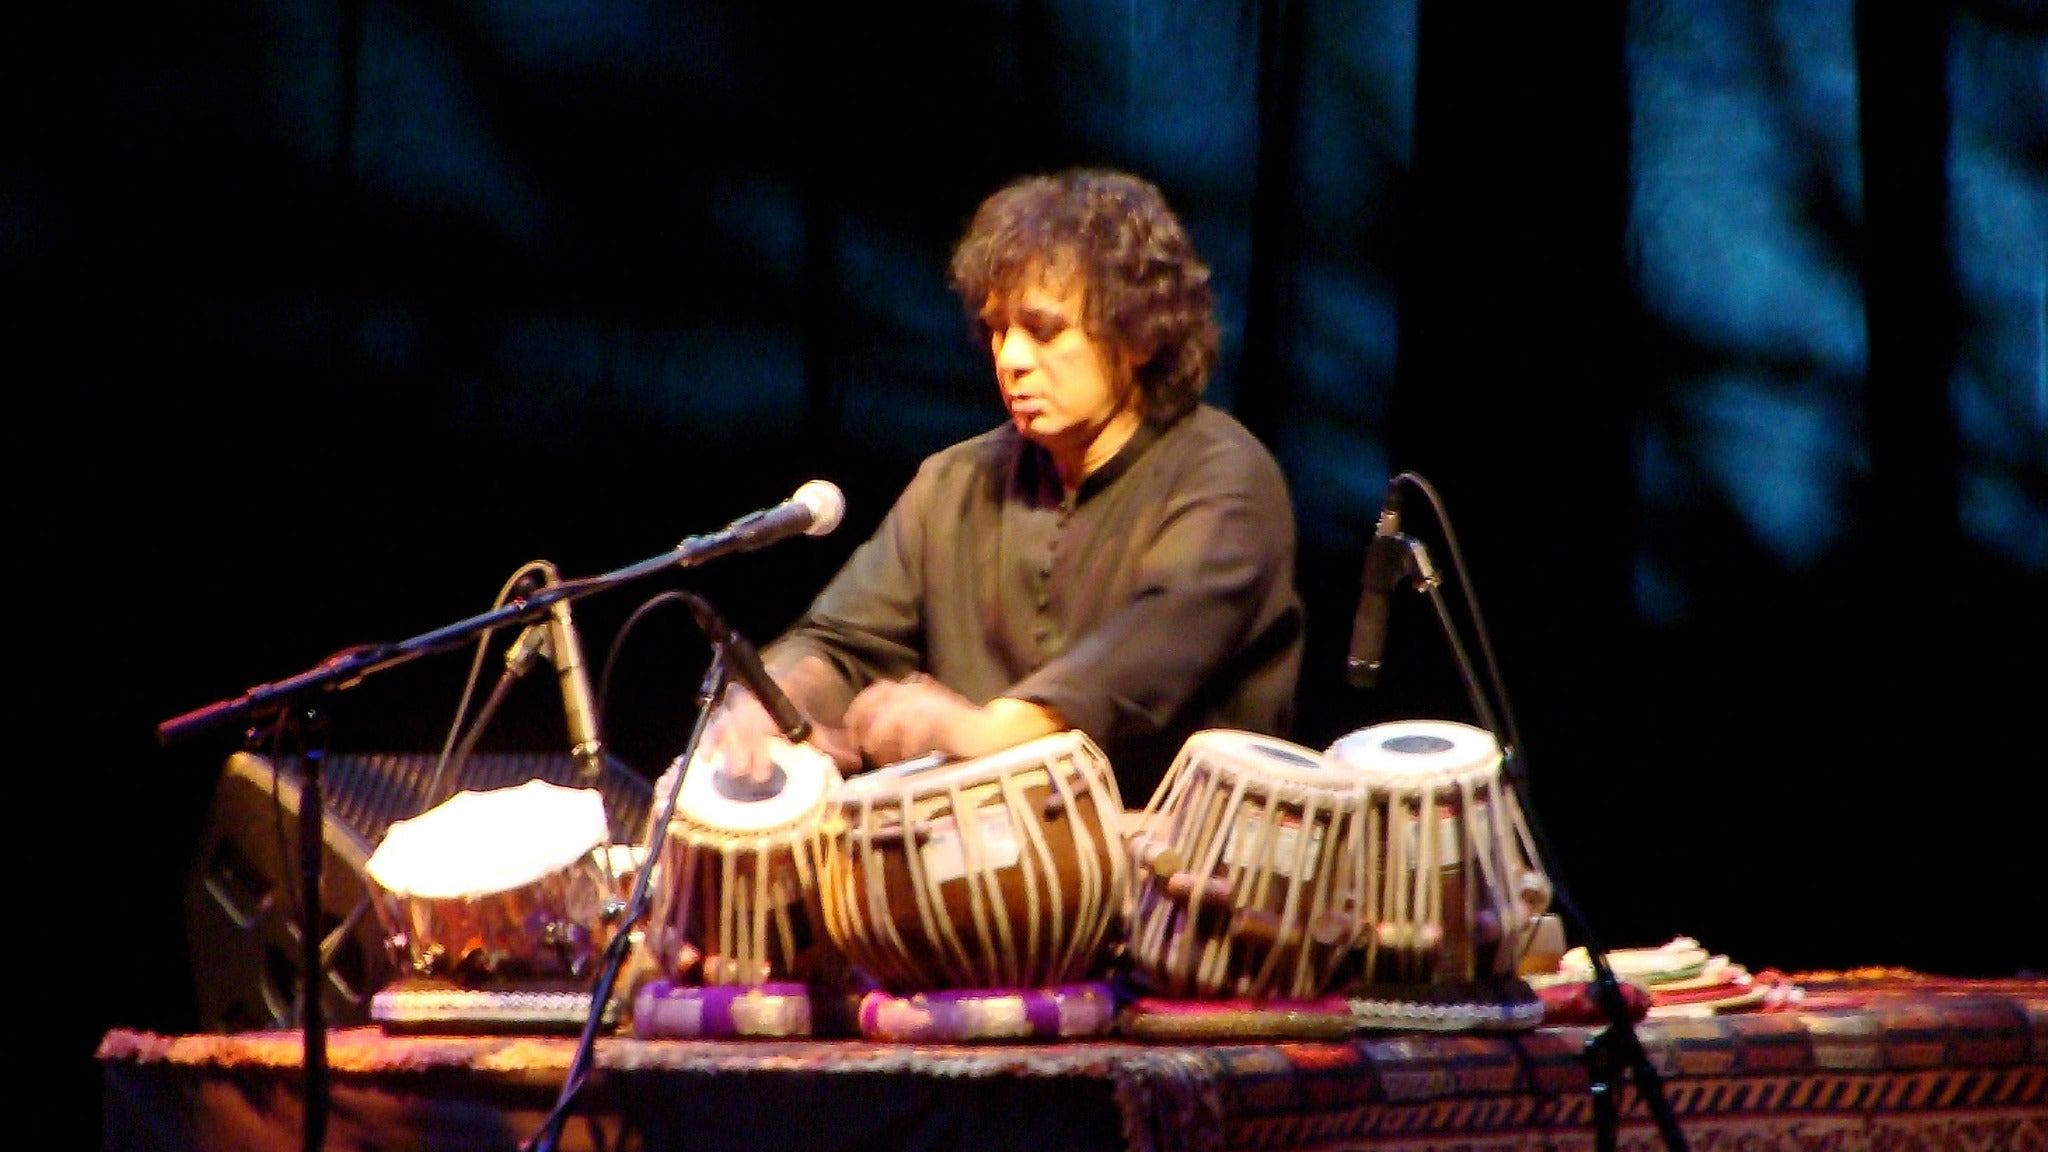 Zakir Hussain & Rahul Sharma at Royce Hall - UCLA